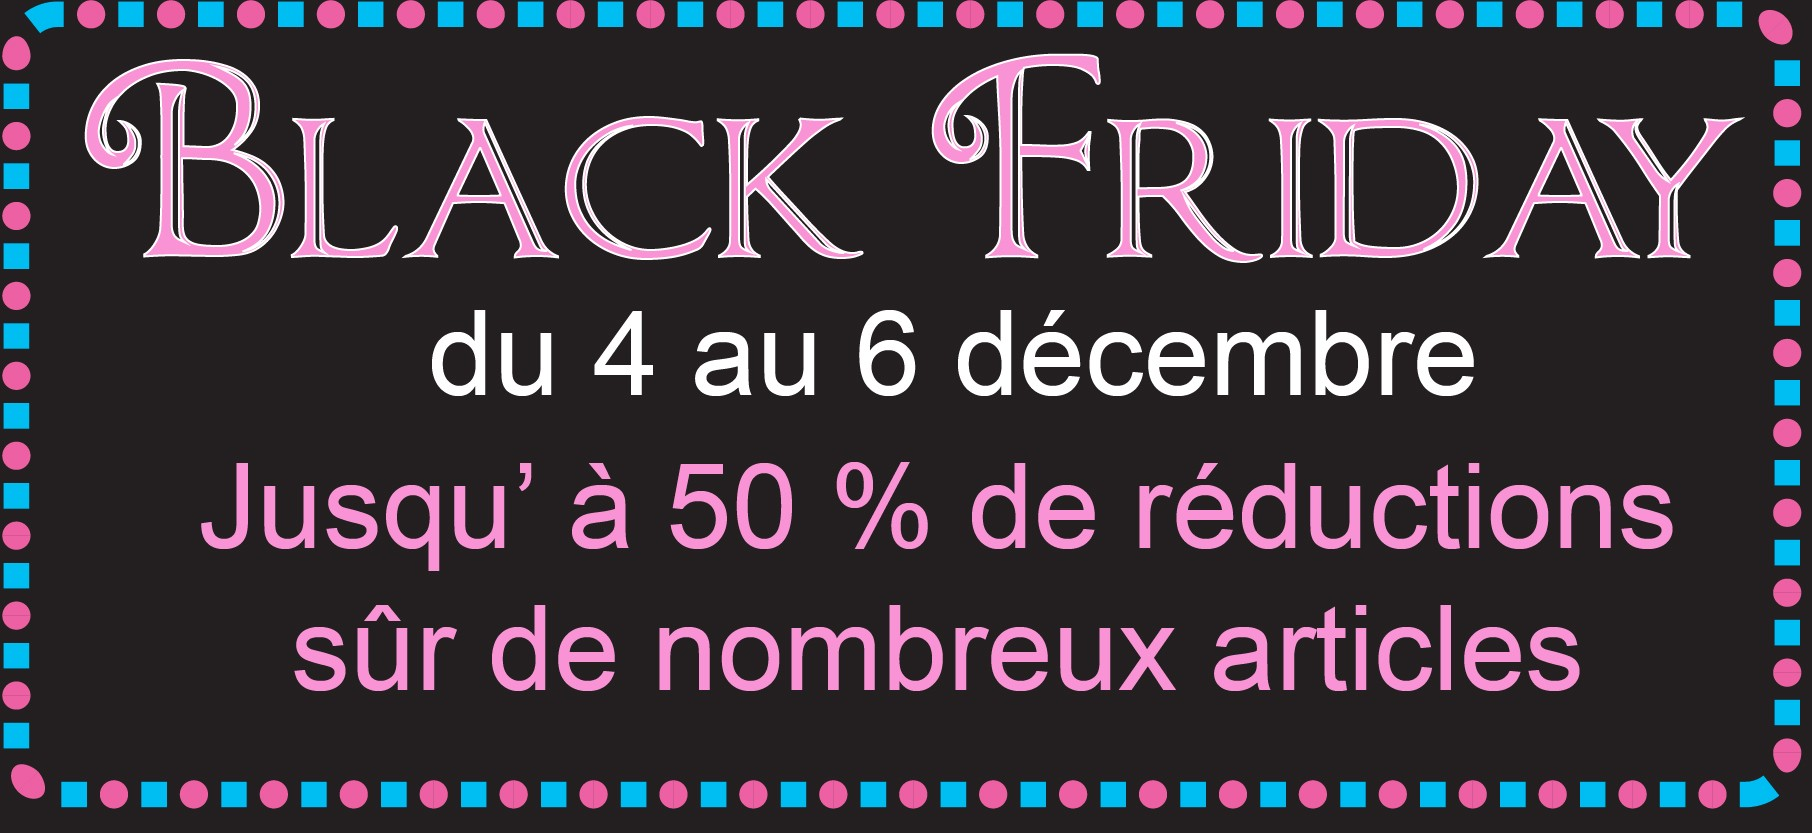 Black friday promotions